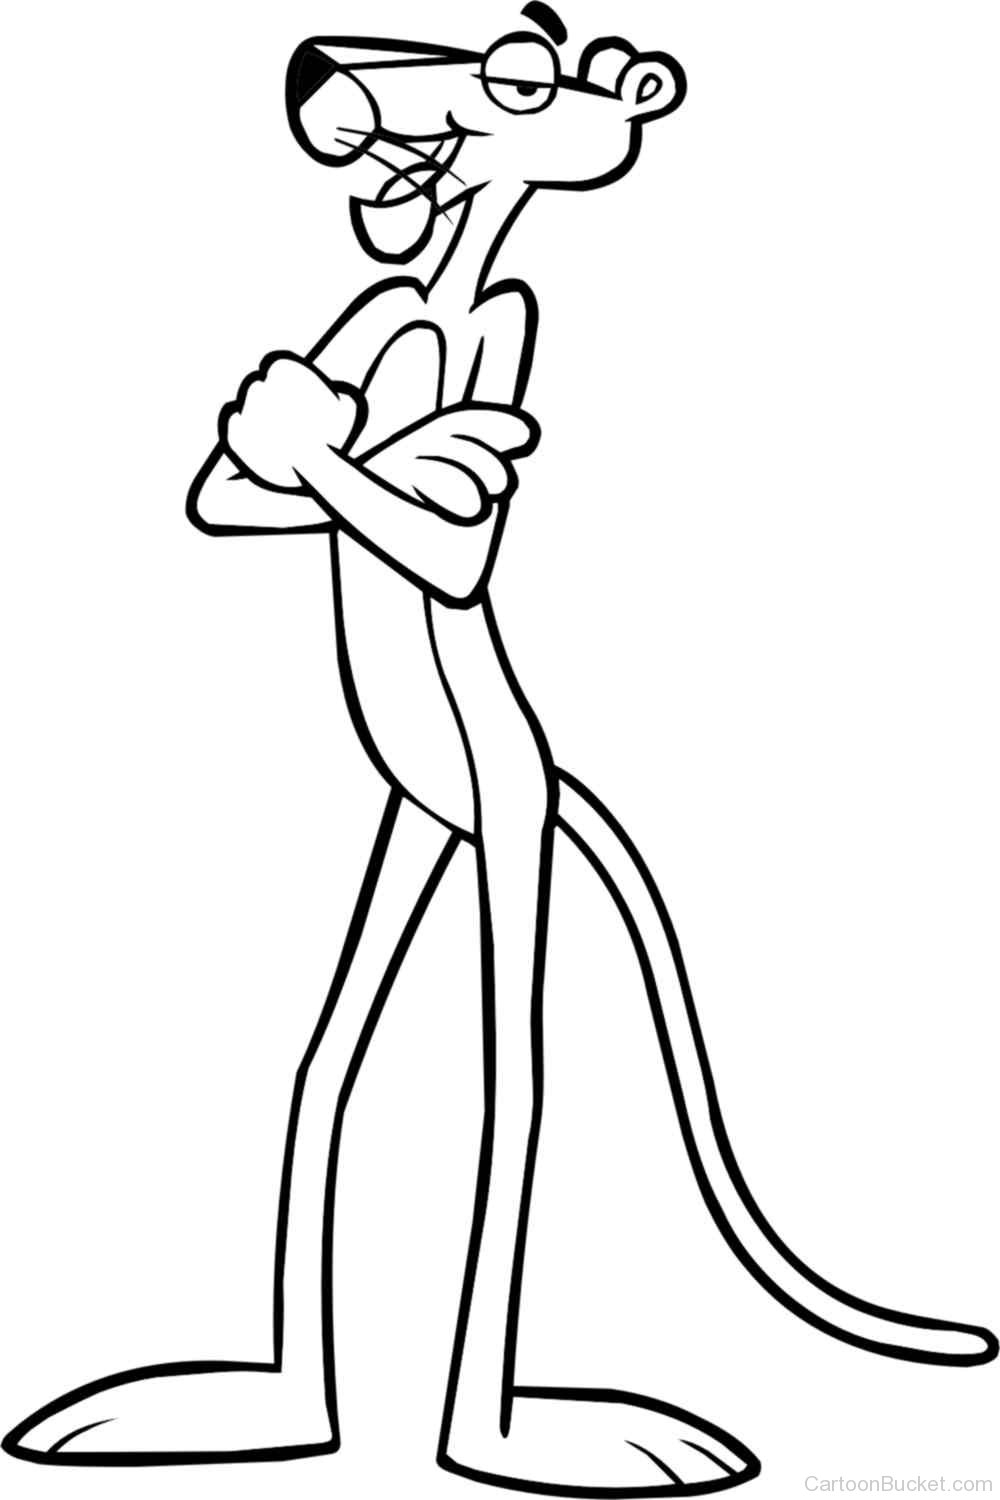 1000x1500 Pink Panther Cartoon Drawing